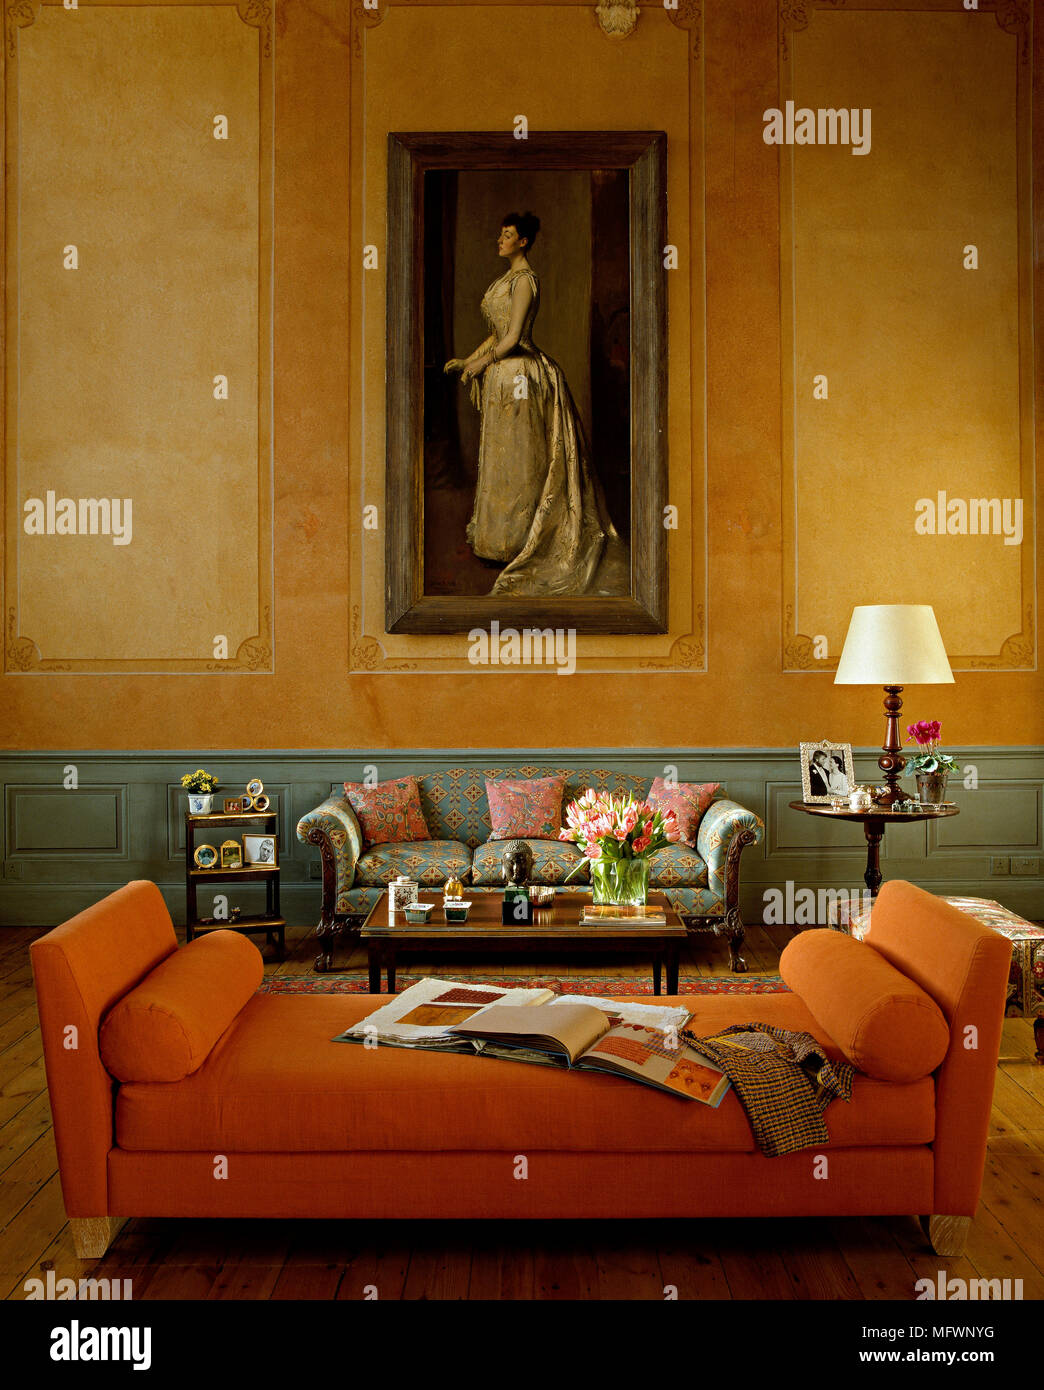 Detail Of A Traditional Sitting Room With Decorative Painted Walls,  Upholstered Daybed And Sofa, High Ceilings And A Large Portrait Painting.